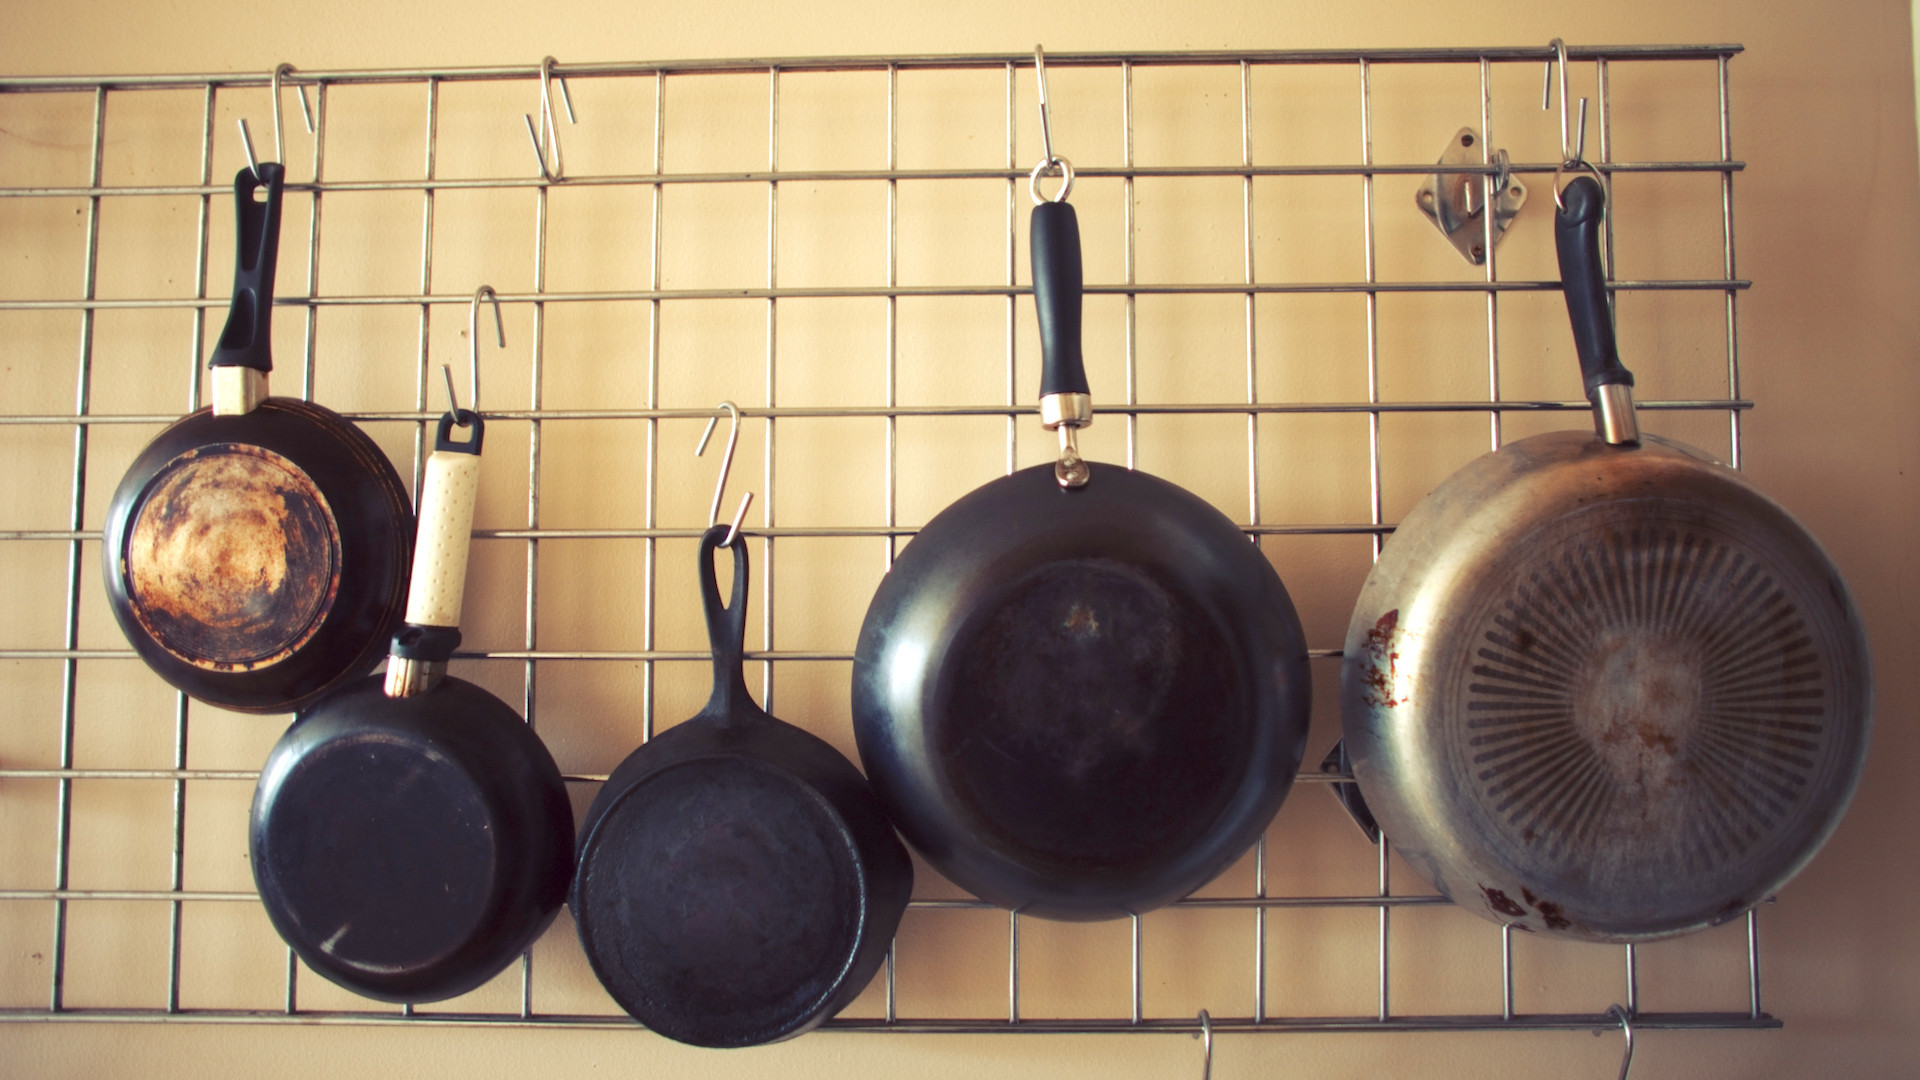 DIY Pots And Pans Rack  12 DIY pot rack projects to save space in your kitchen